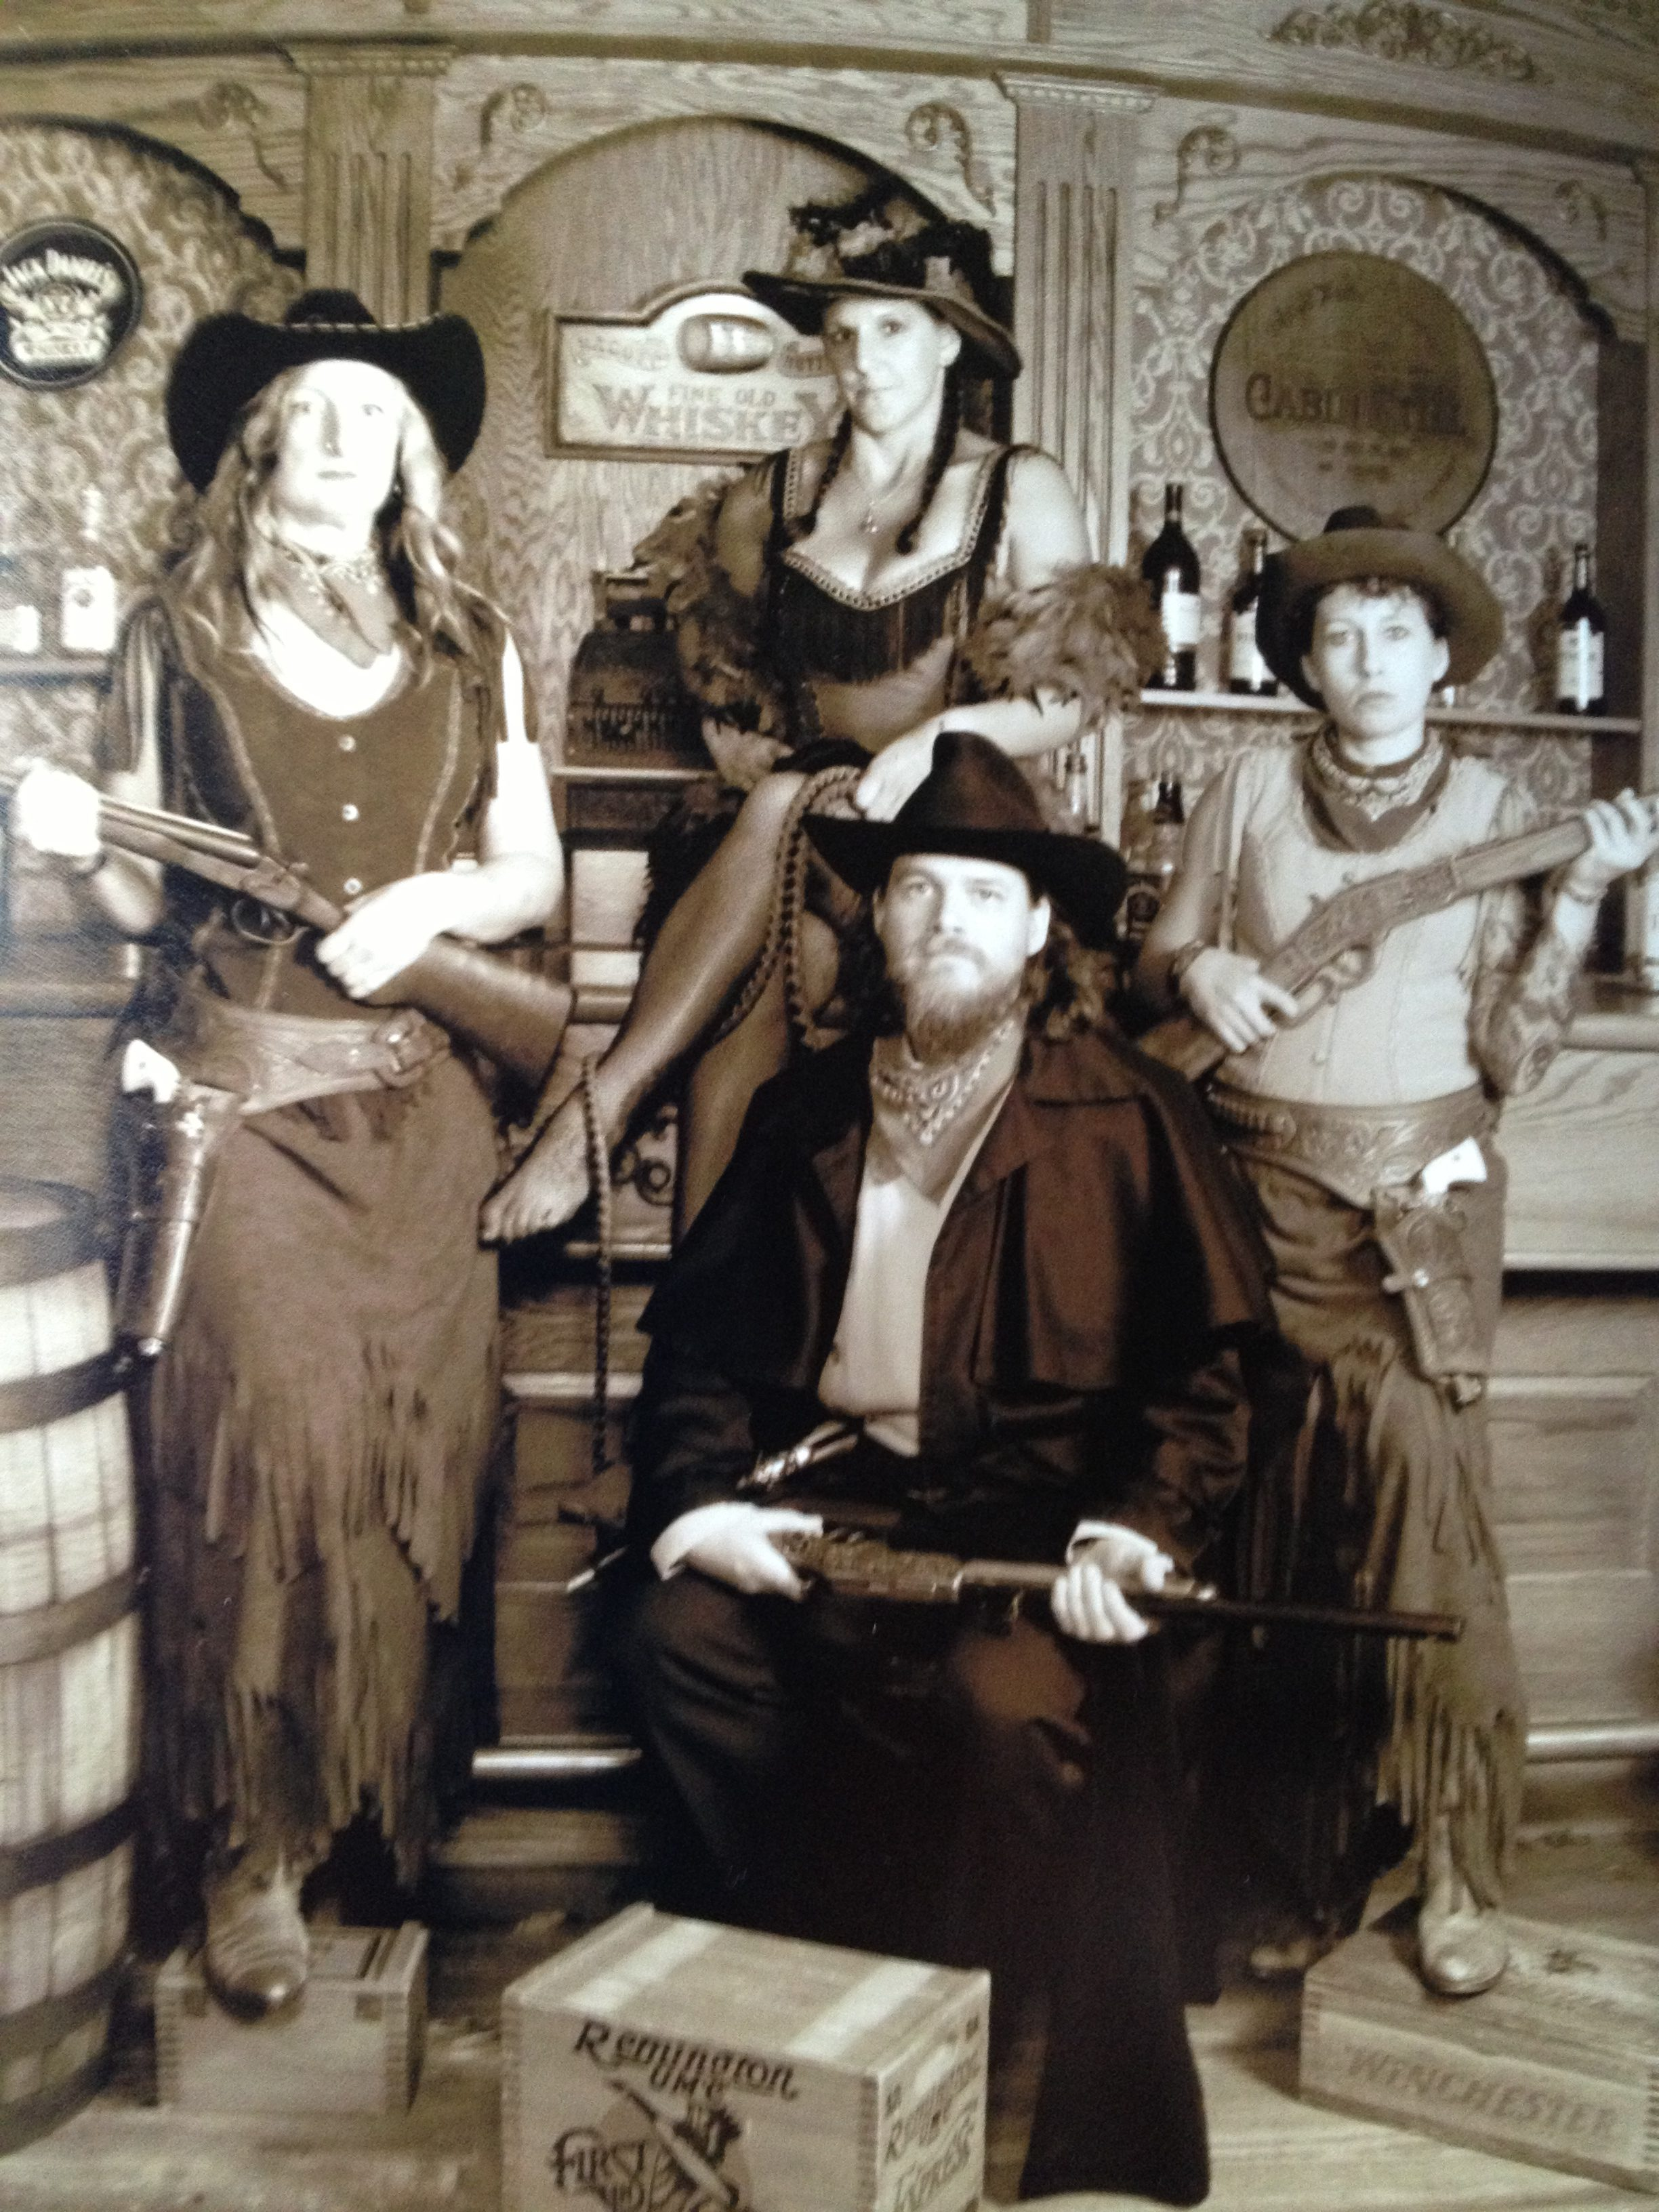 Us in the Old West!